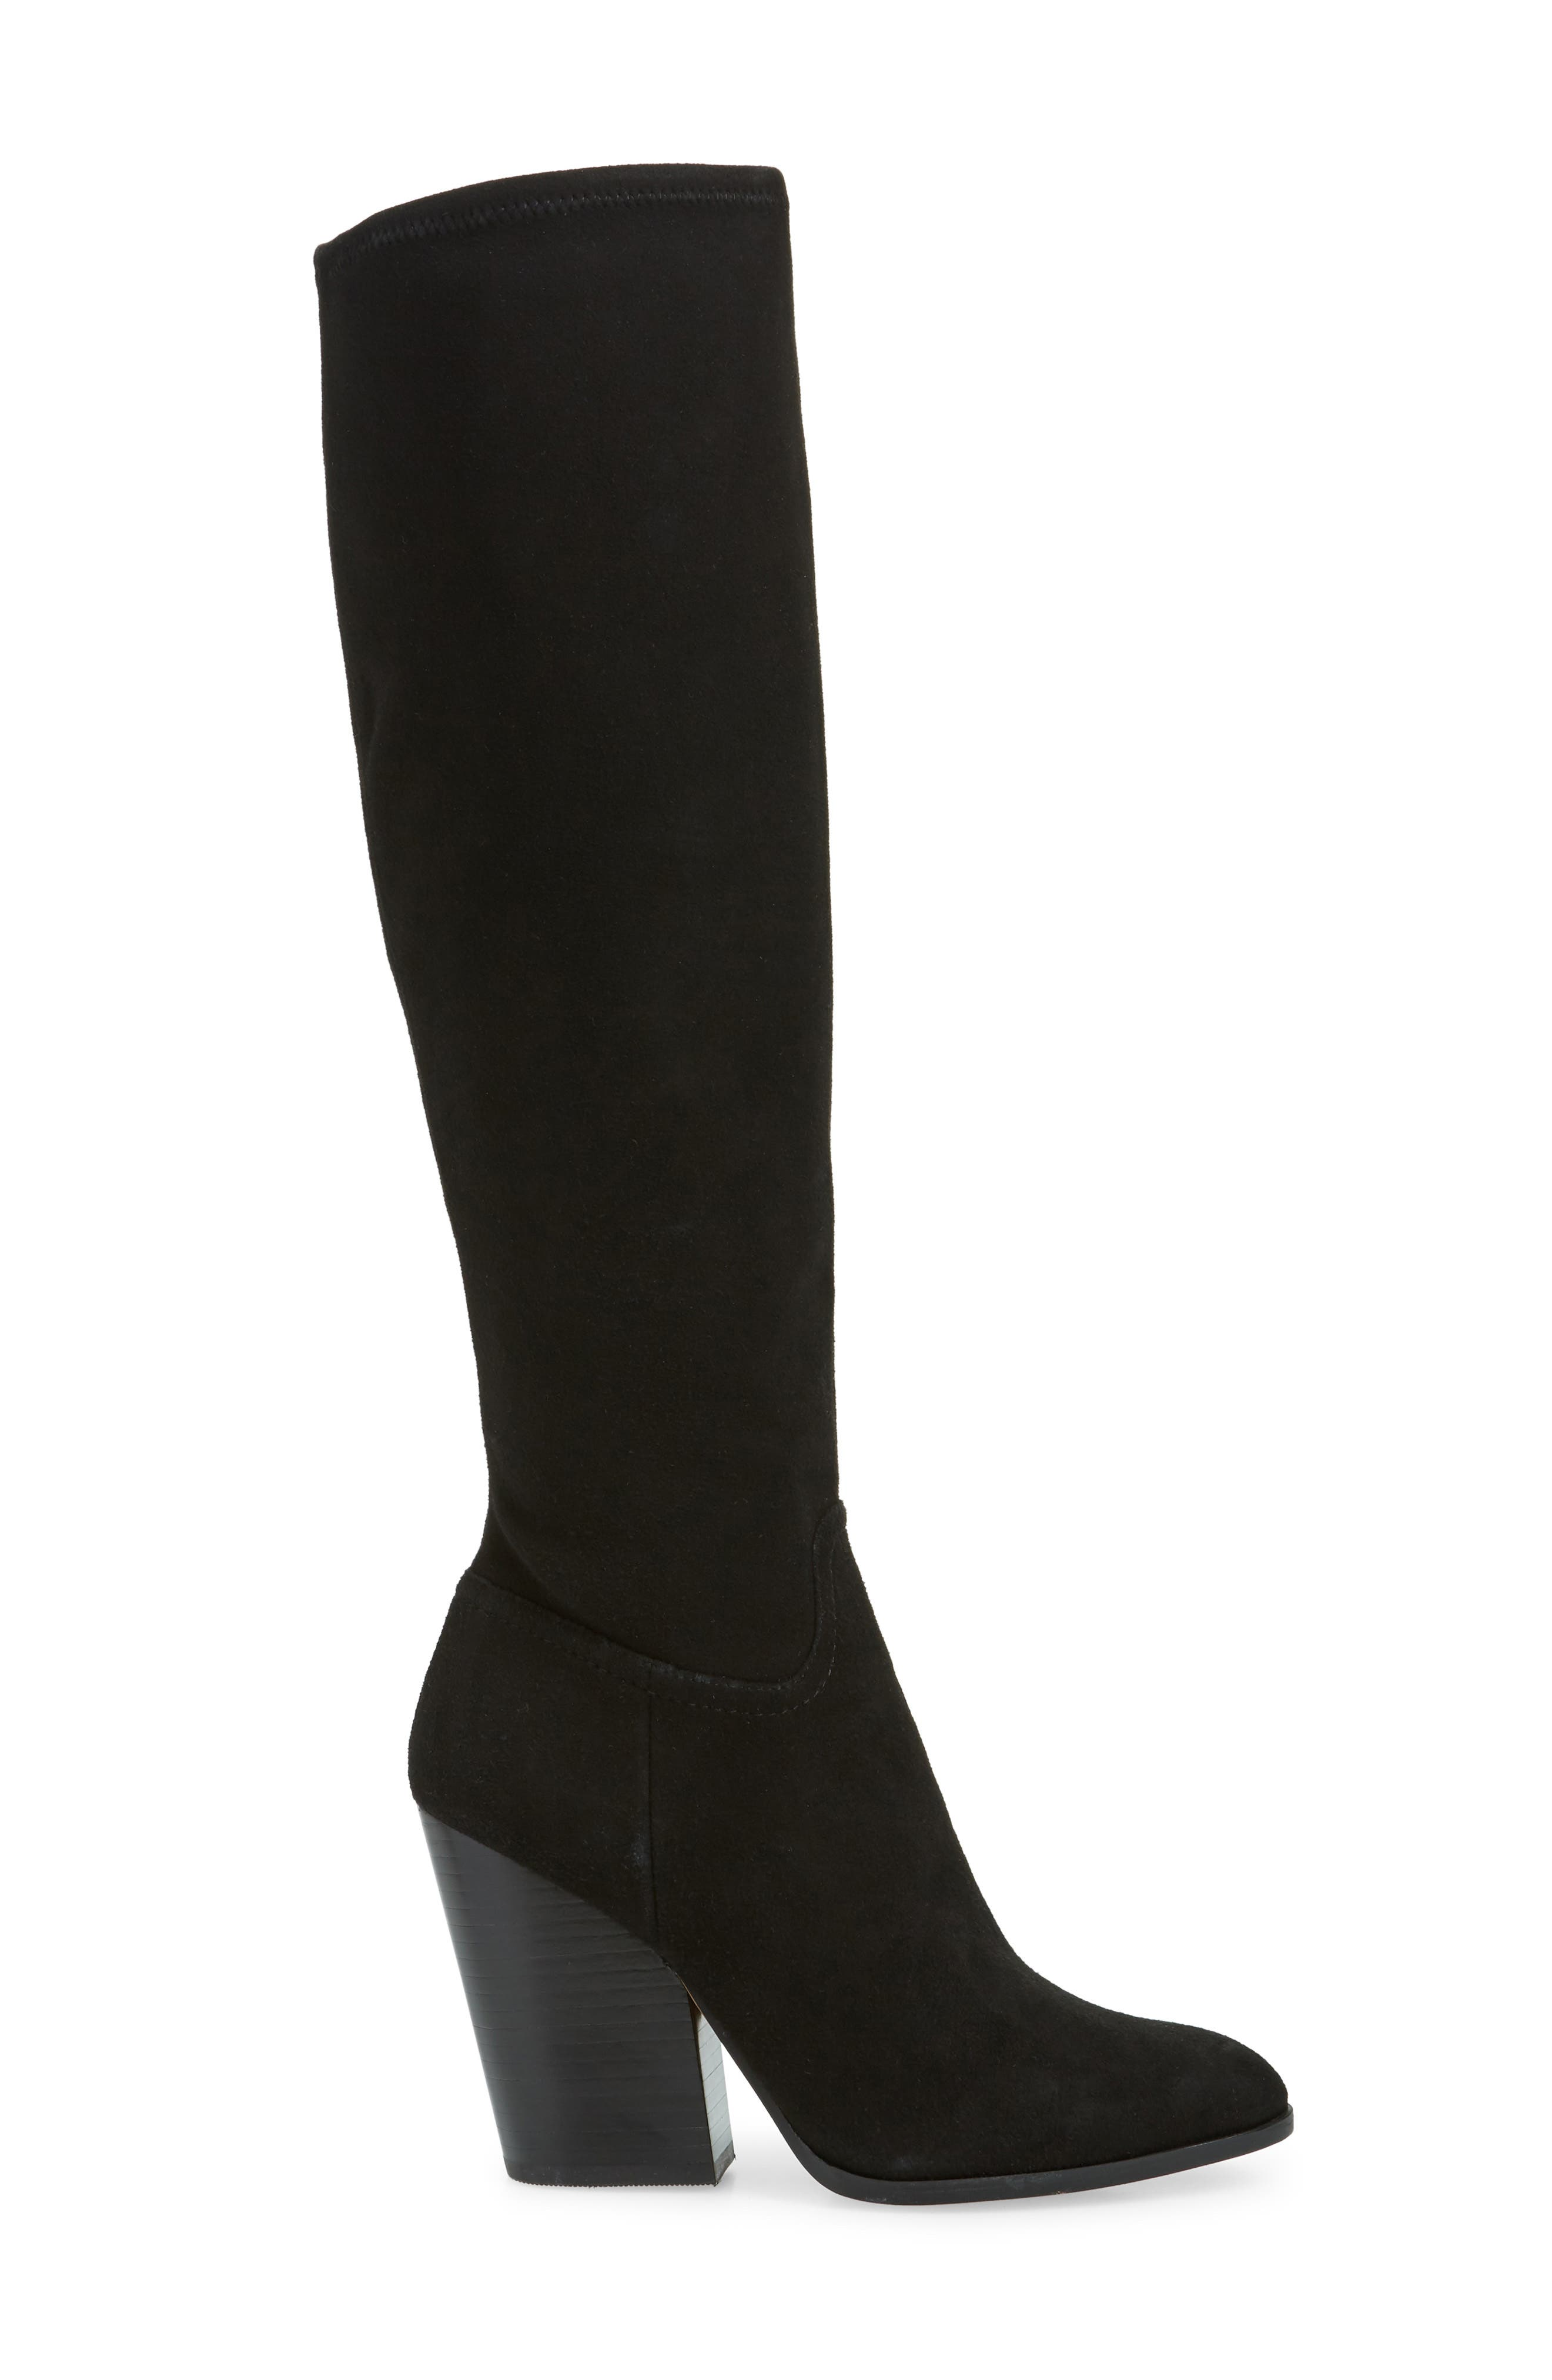 LINEA PAOLO, Elena Knee High Boot, Alternate thumbnail 3, color, BLACK STRETCH SUEDE